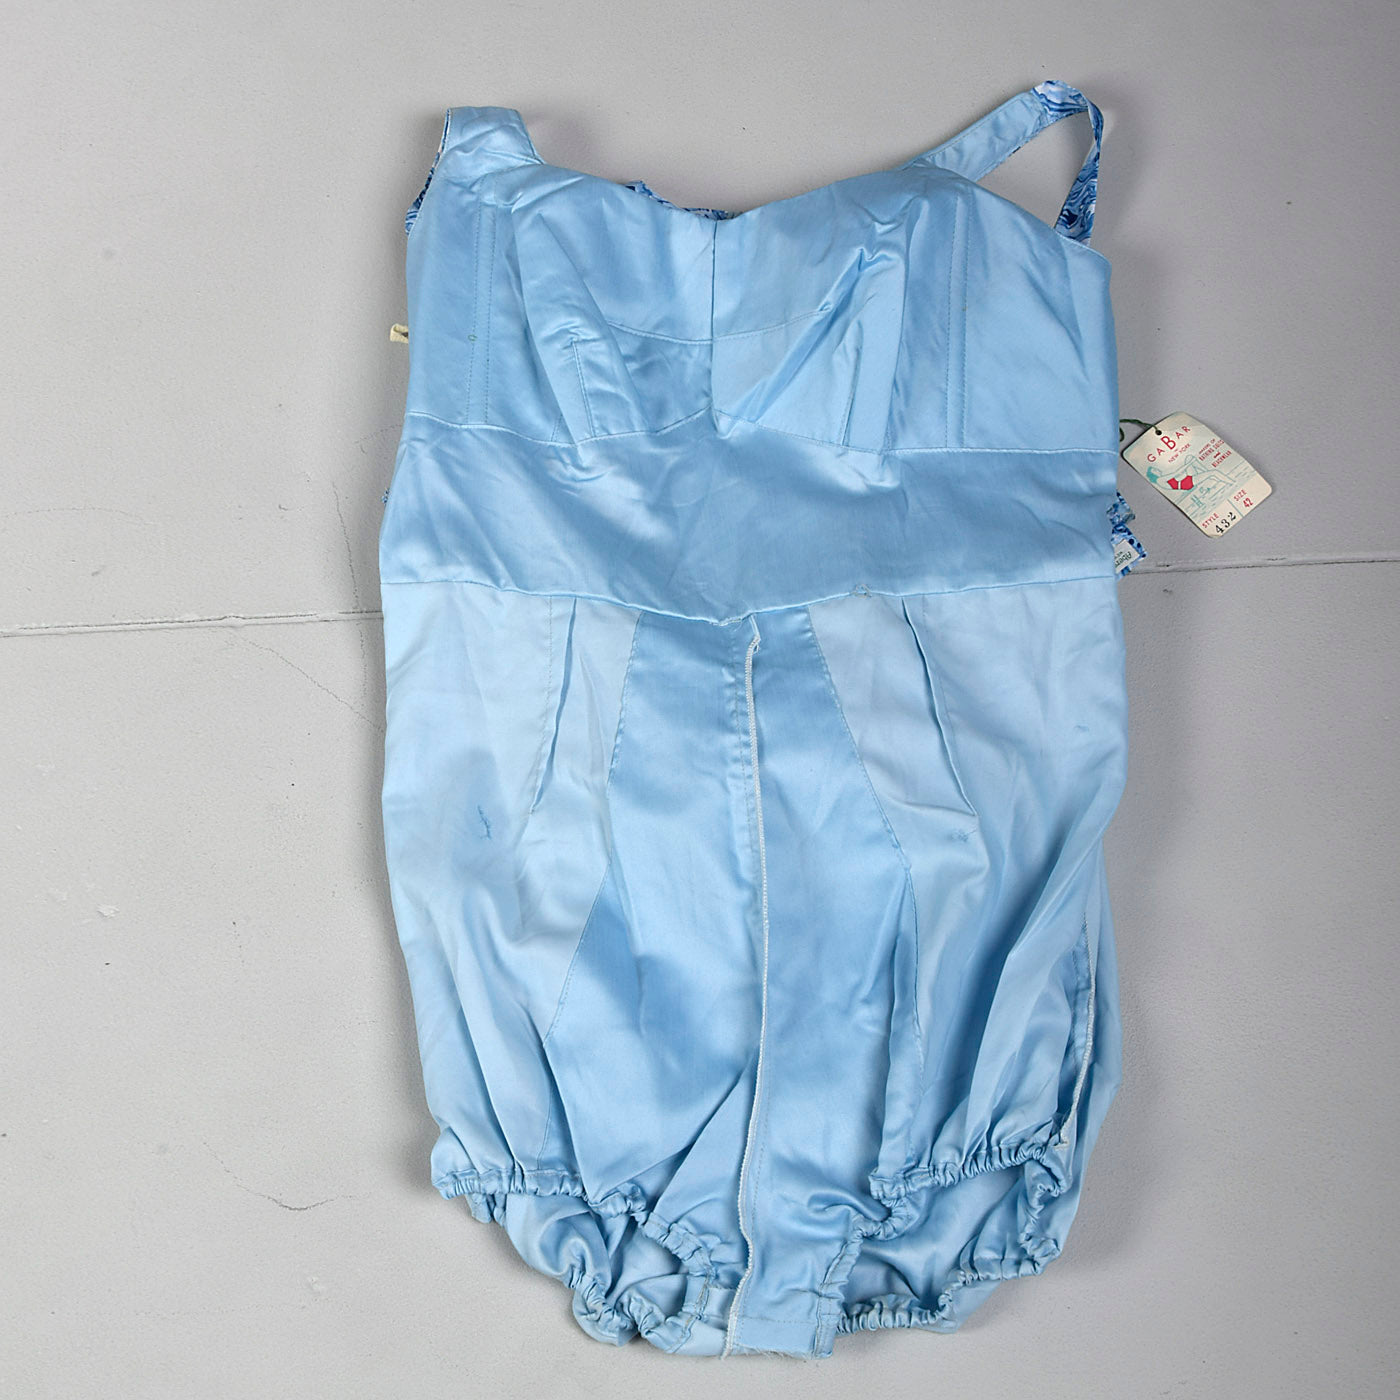 1960s Abercrombie & Fitch Deadstock Swim Romper with Cover-Up